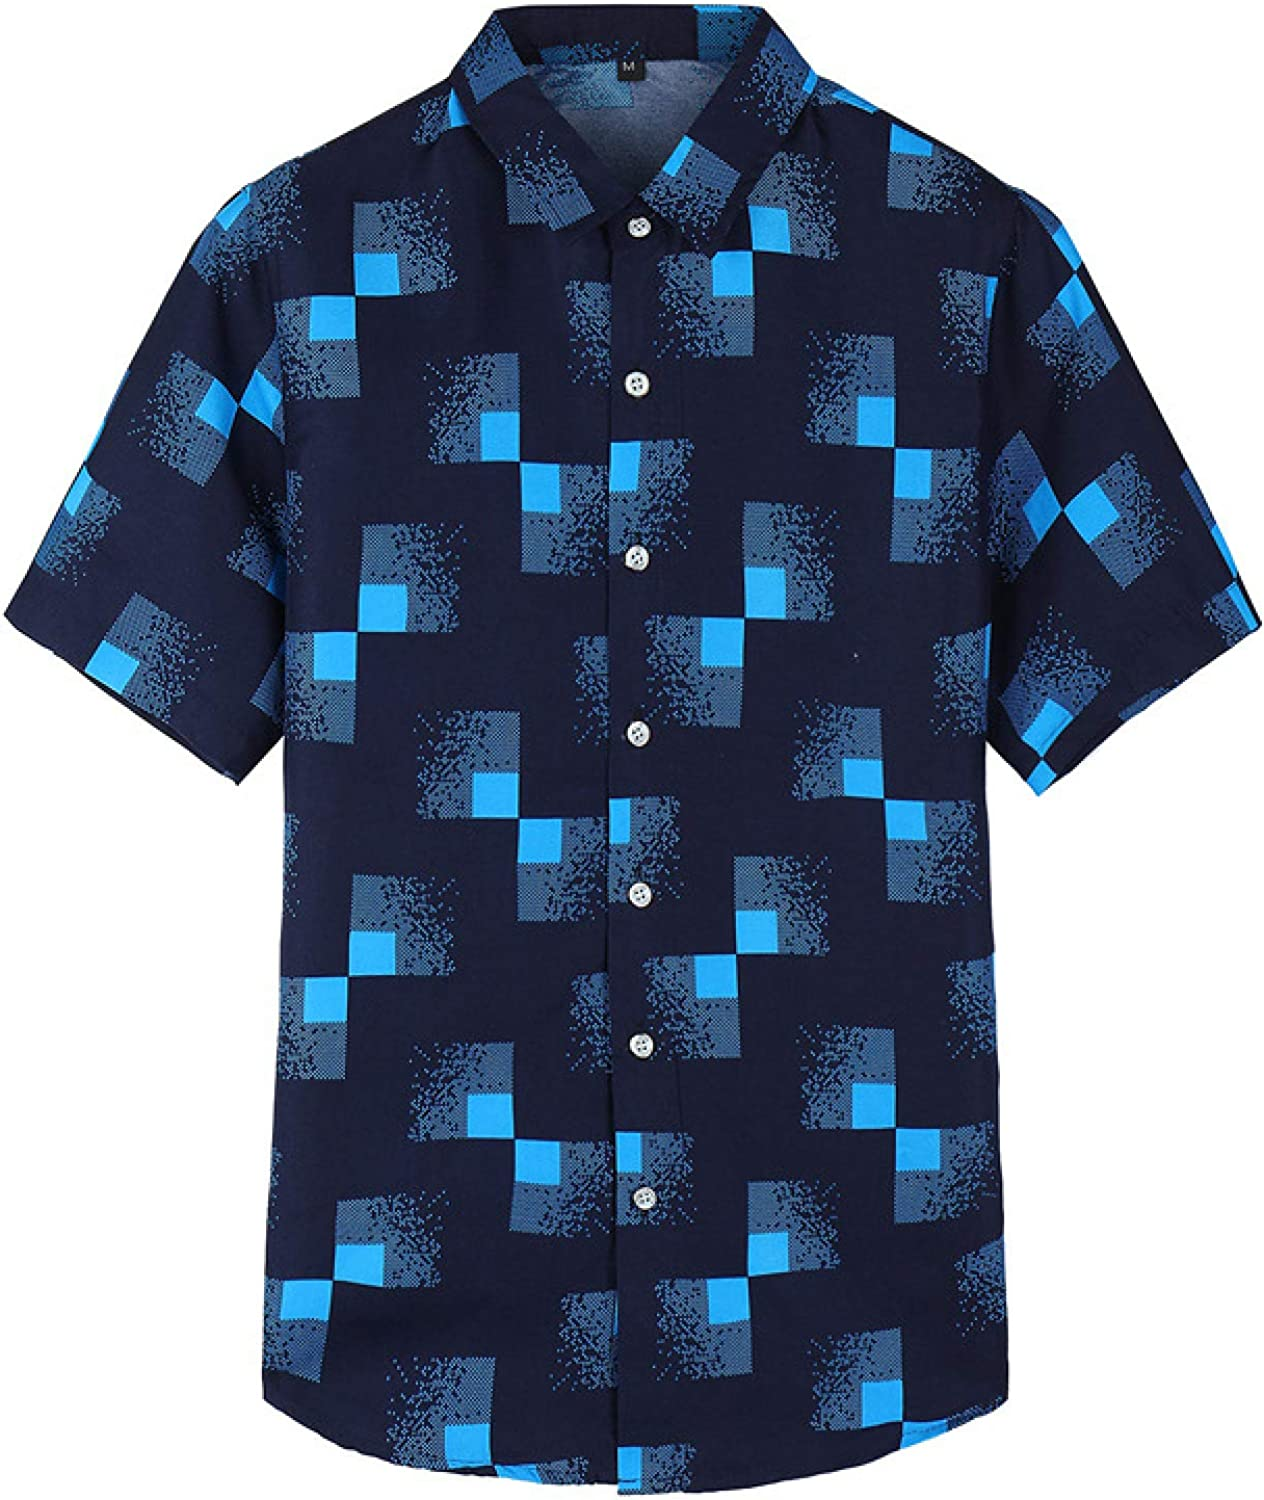 Men's Business Casual Plaid Short-Sleeved Shirt Ma Challenge the depot lowest price of Japan Fashion Color